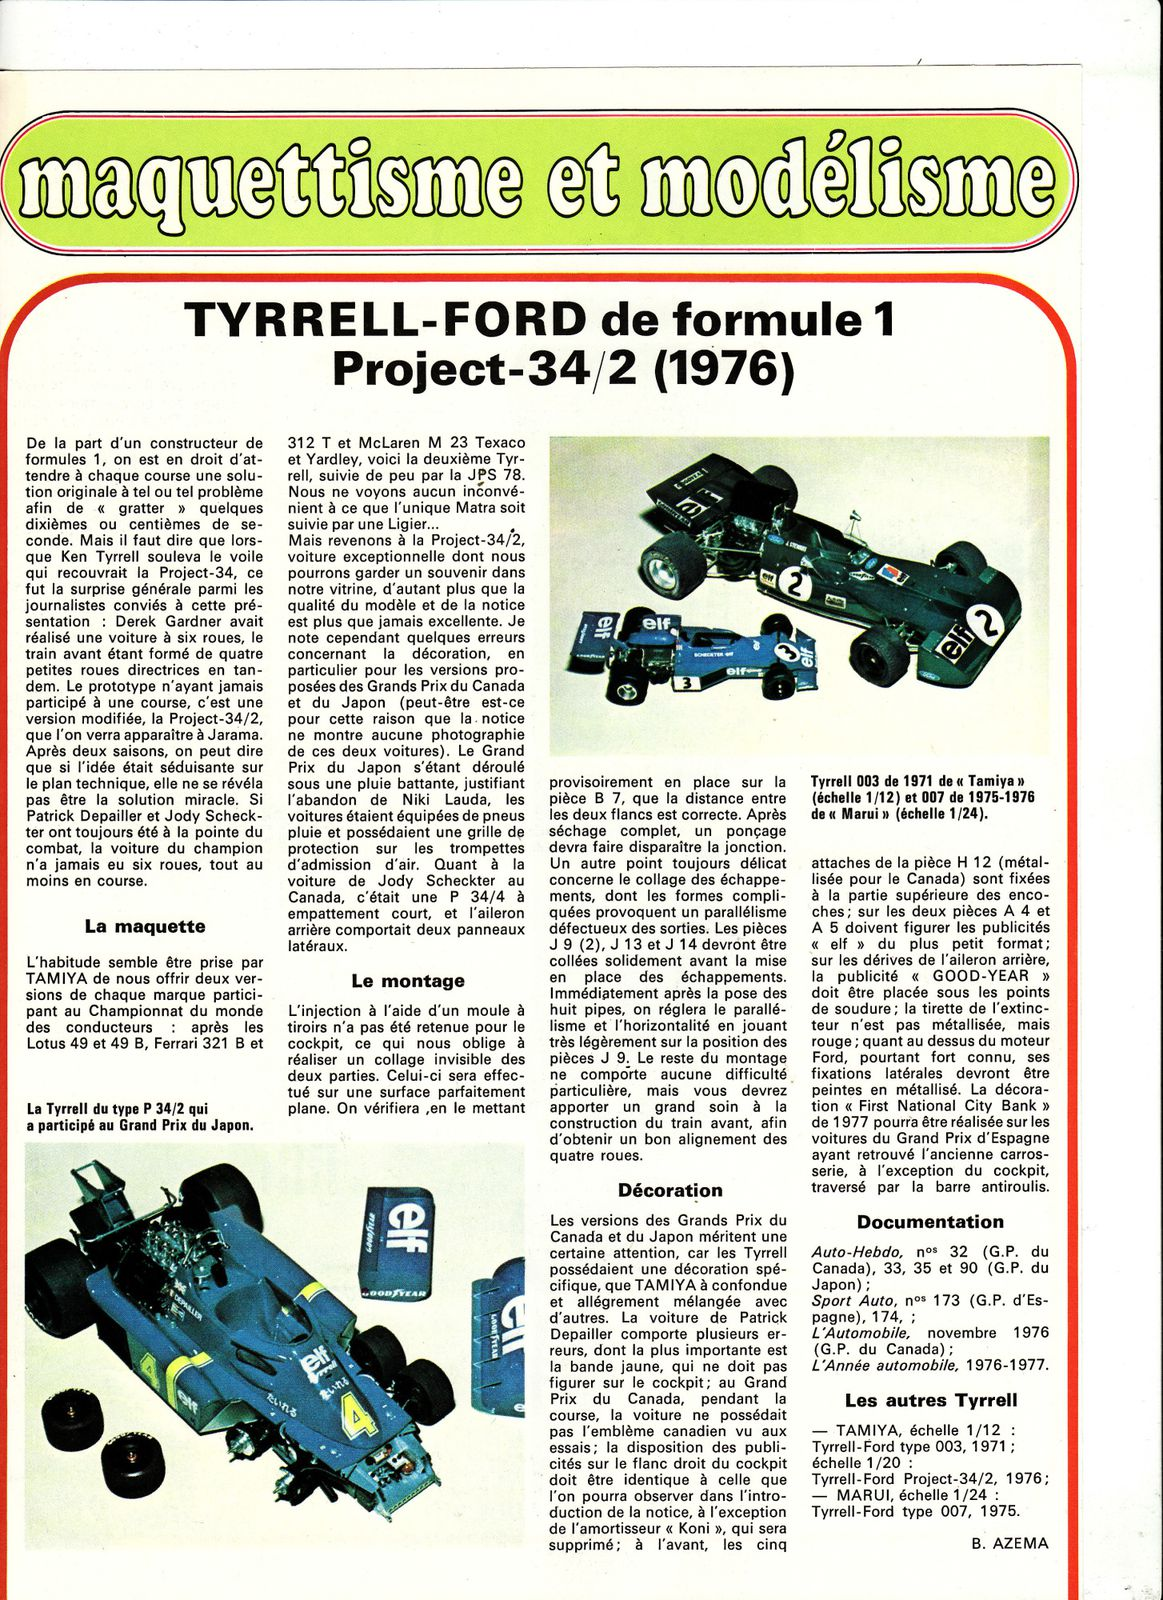 auto Tyrell Ford F1 project 34.2 1976 00